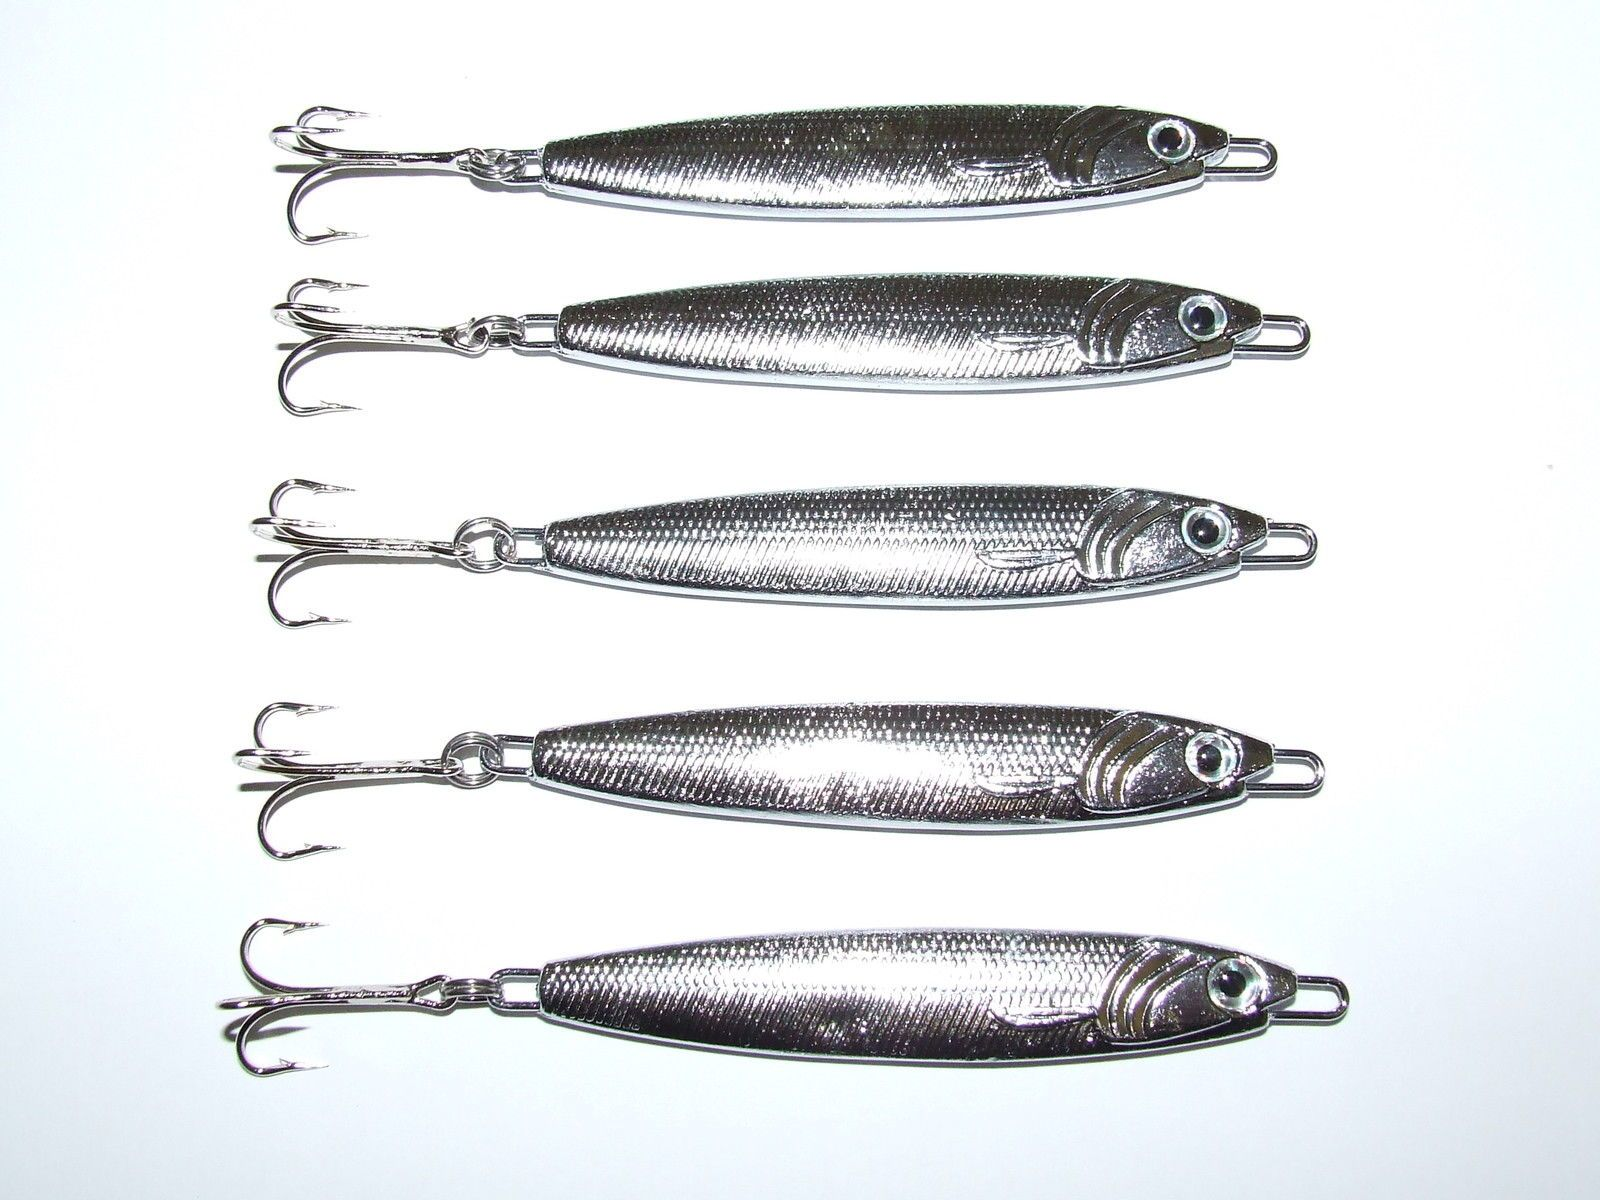 """Mackerel bass and pike fishing lures 1 x 5.5/"""" x 20gm metal spinng lure"""